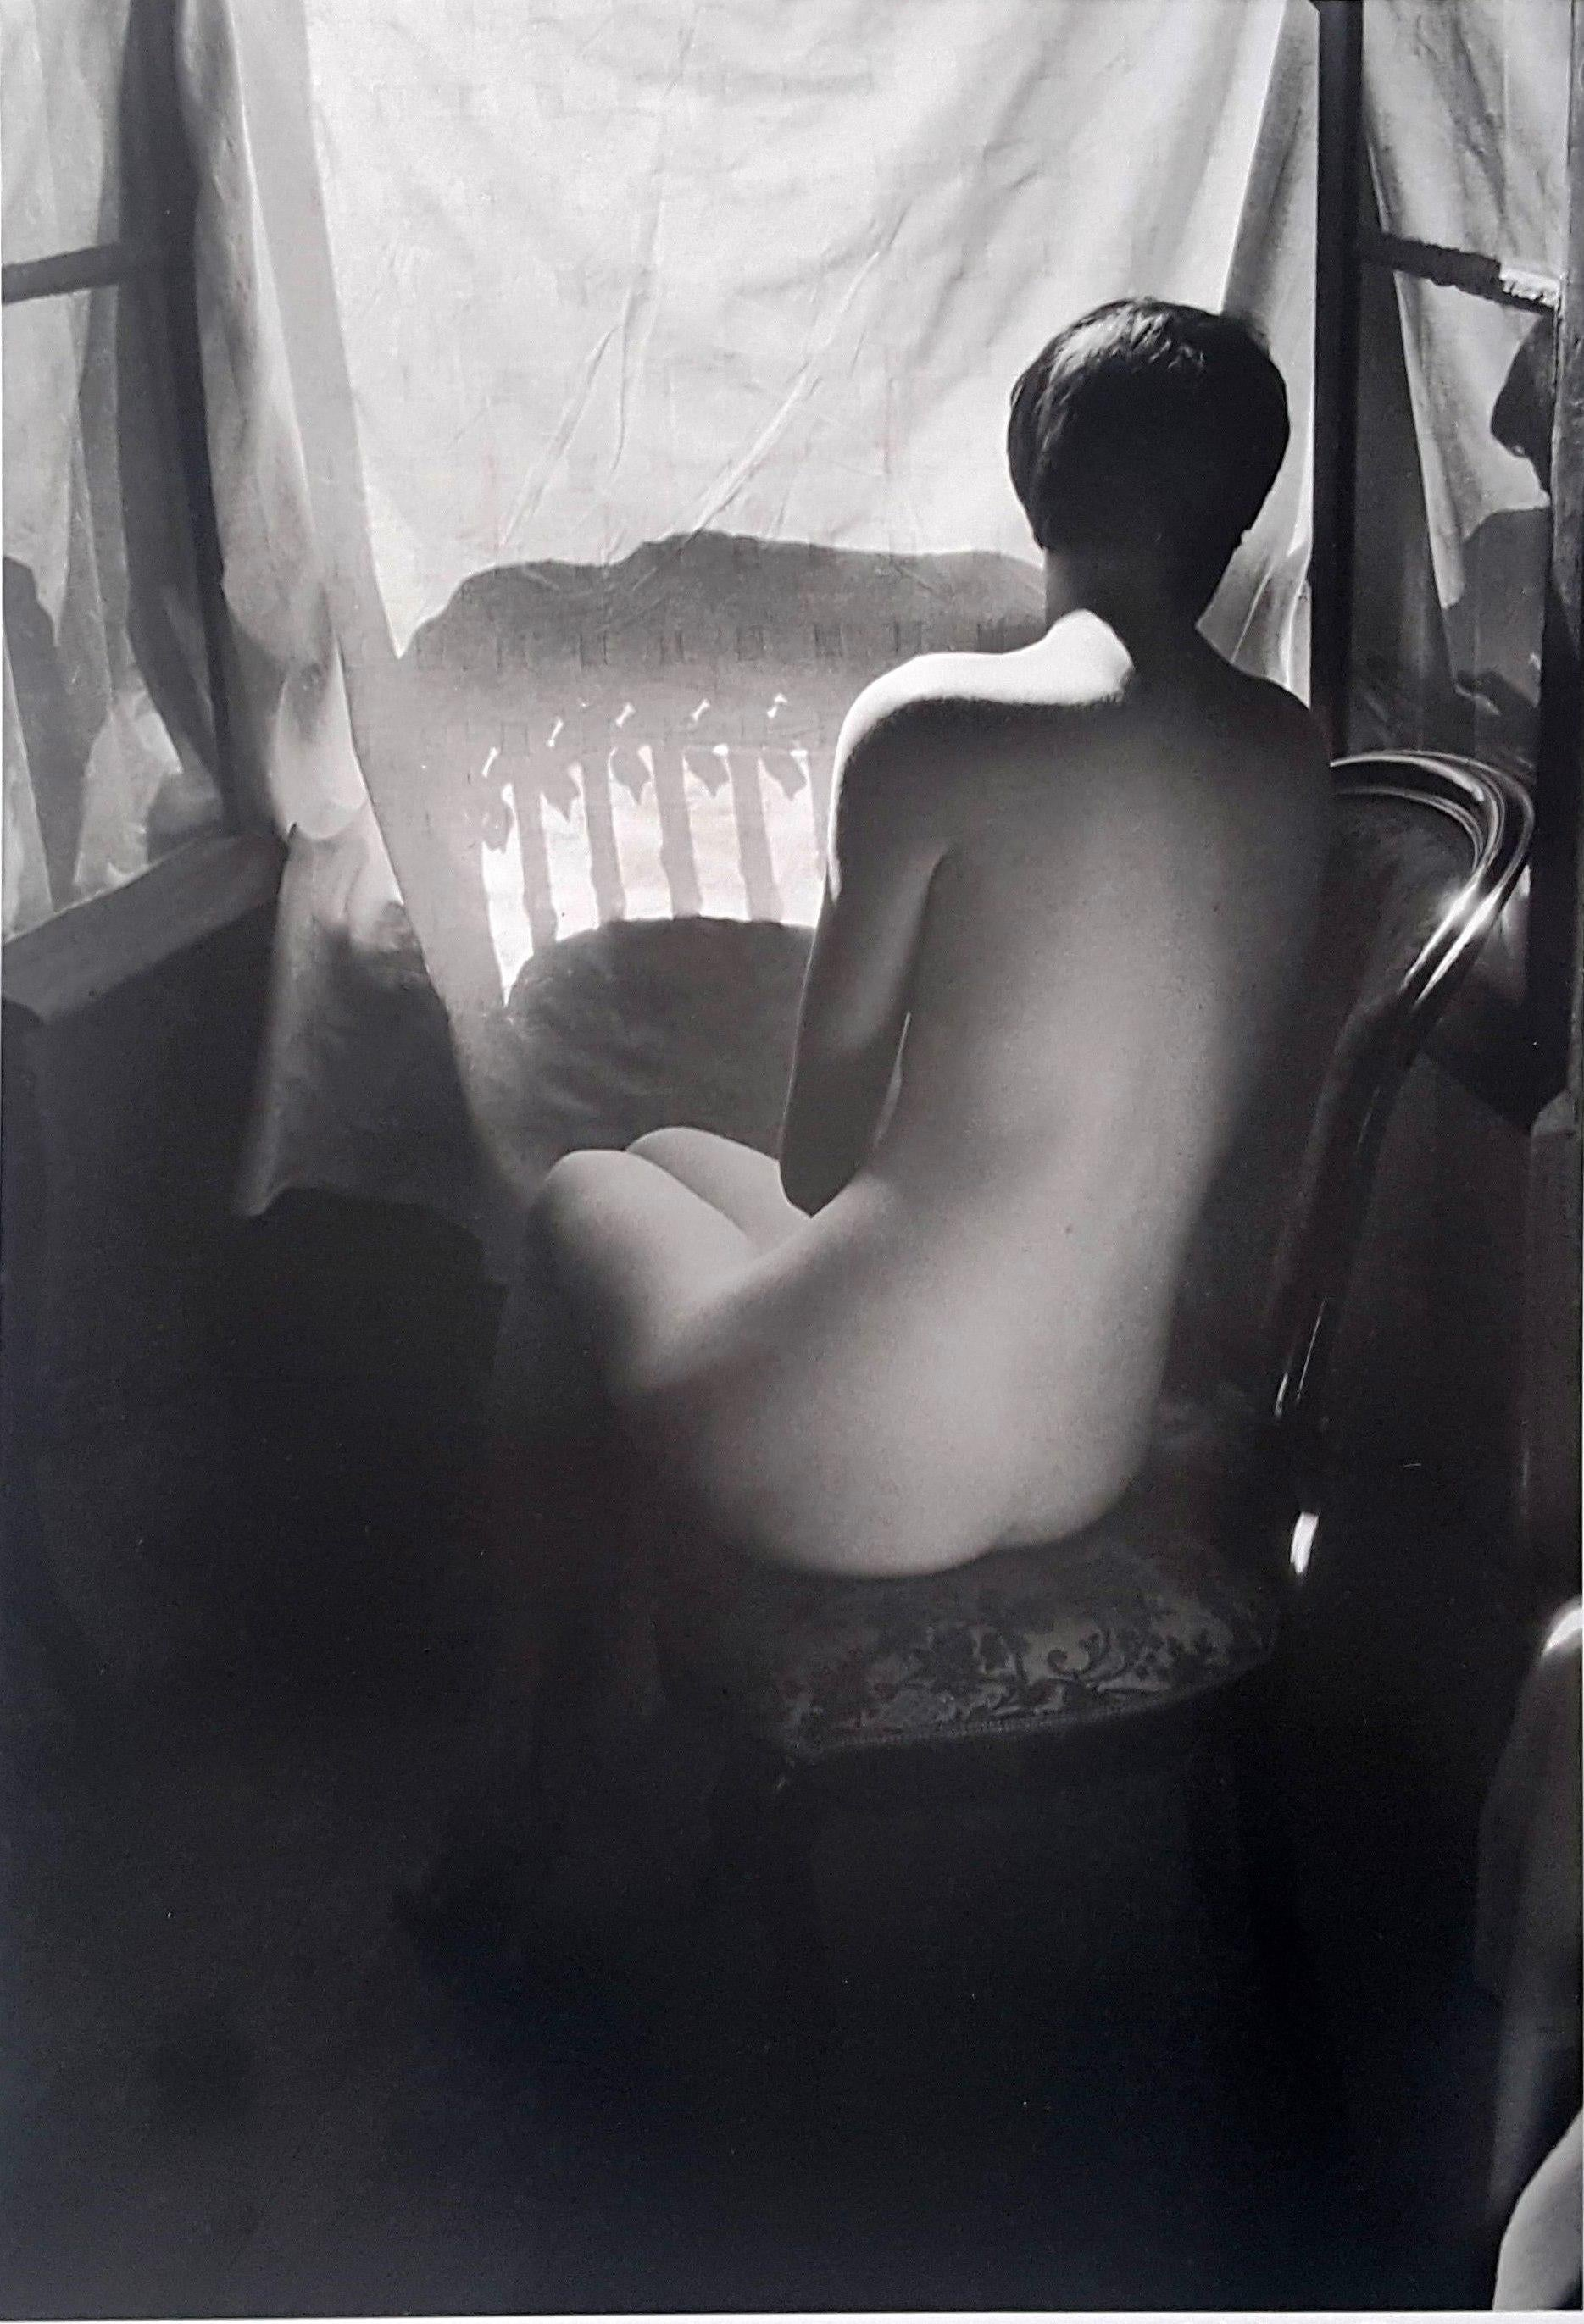 Deena's back - Willy Ronis, 20th Century, French Humanist Photography